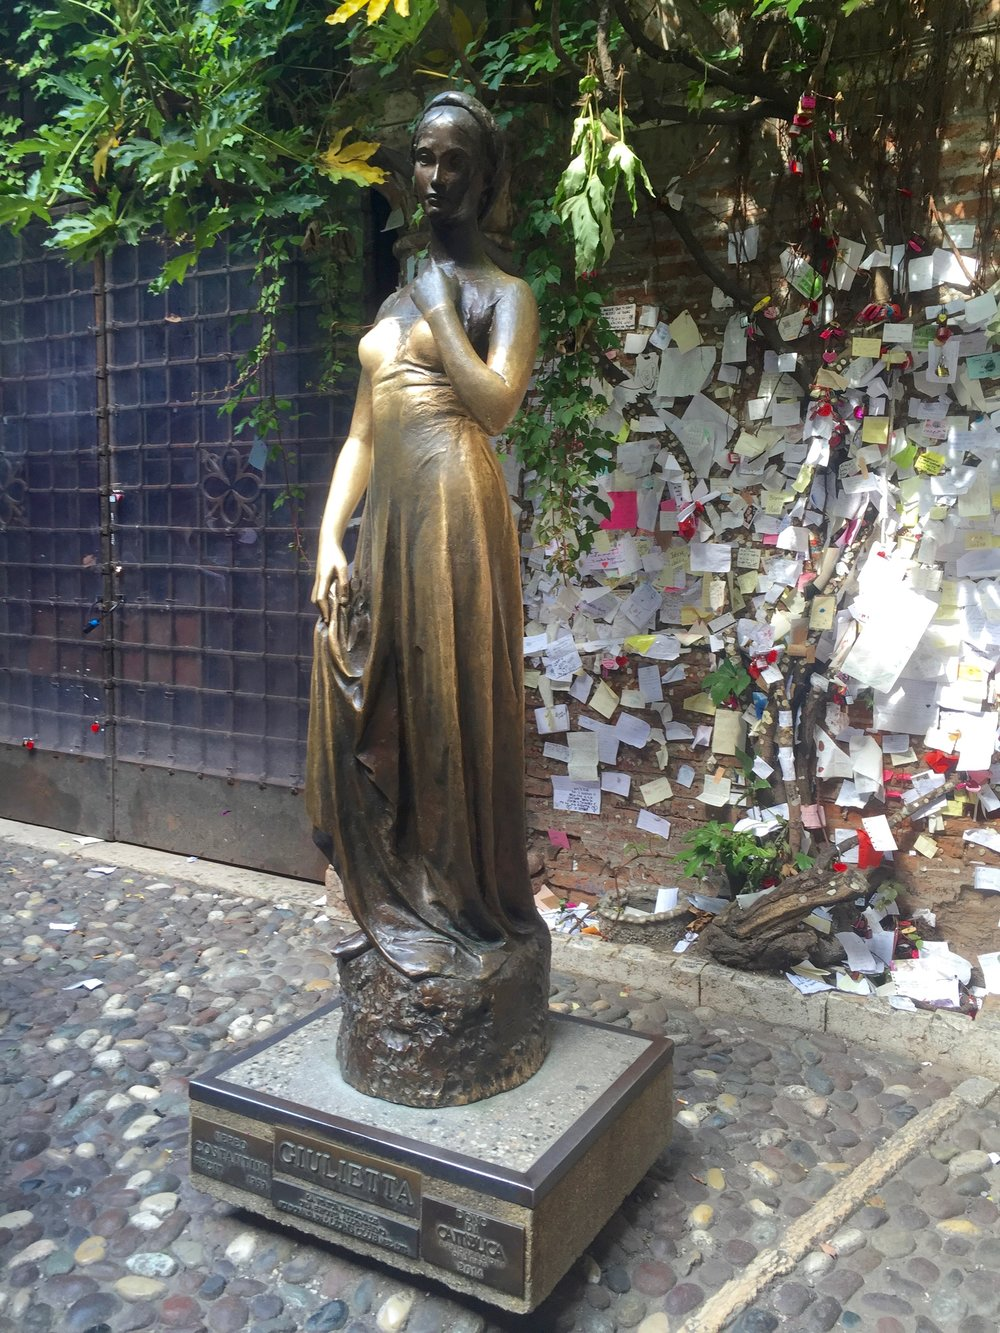 Bronze statue of Juliet (Giulietta) - rubbing her right breast is said to bring good fortune to those unlucky in love